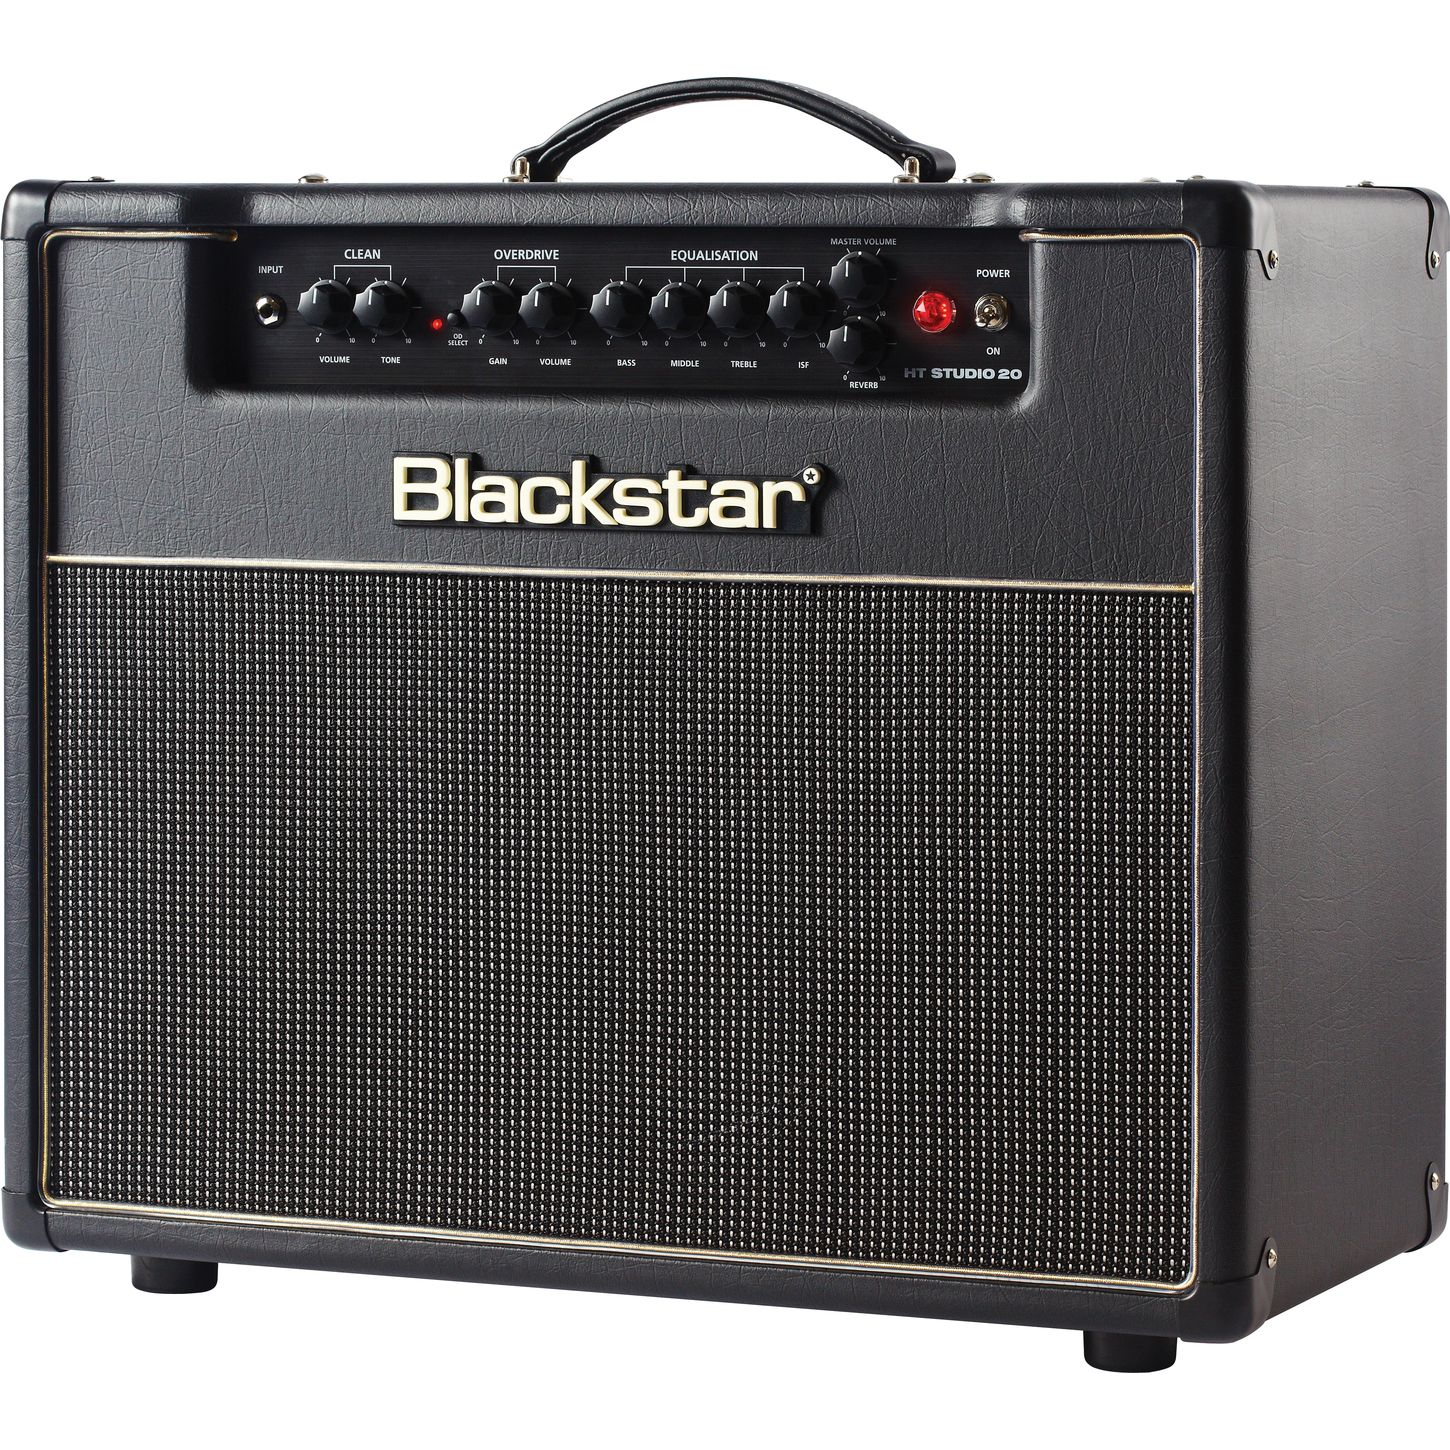 Blackstar Ht Studio 20 Review : gearfeel reviews gear review blackstar ht studio 20 ~ Russianpoet.info Haus und Dekorationen